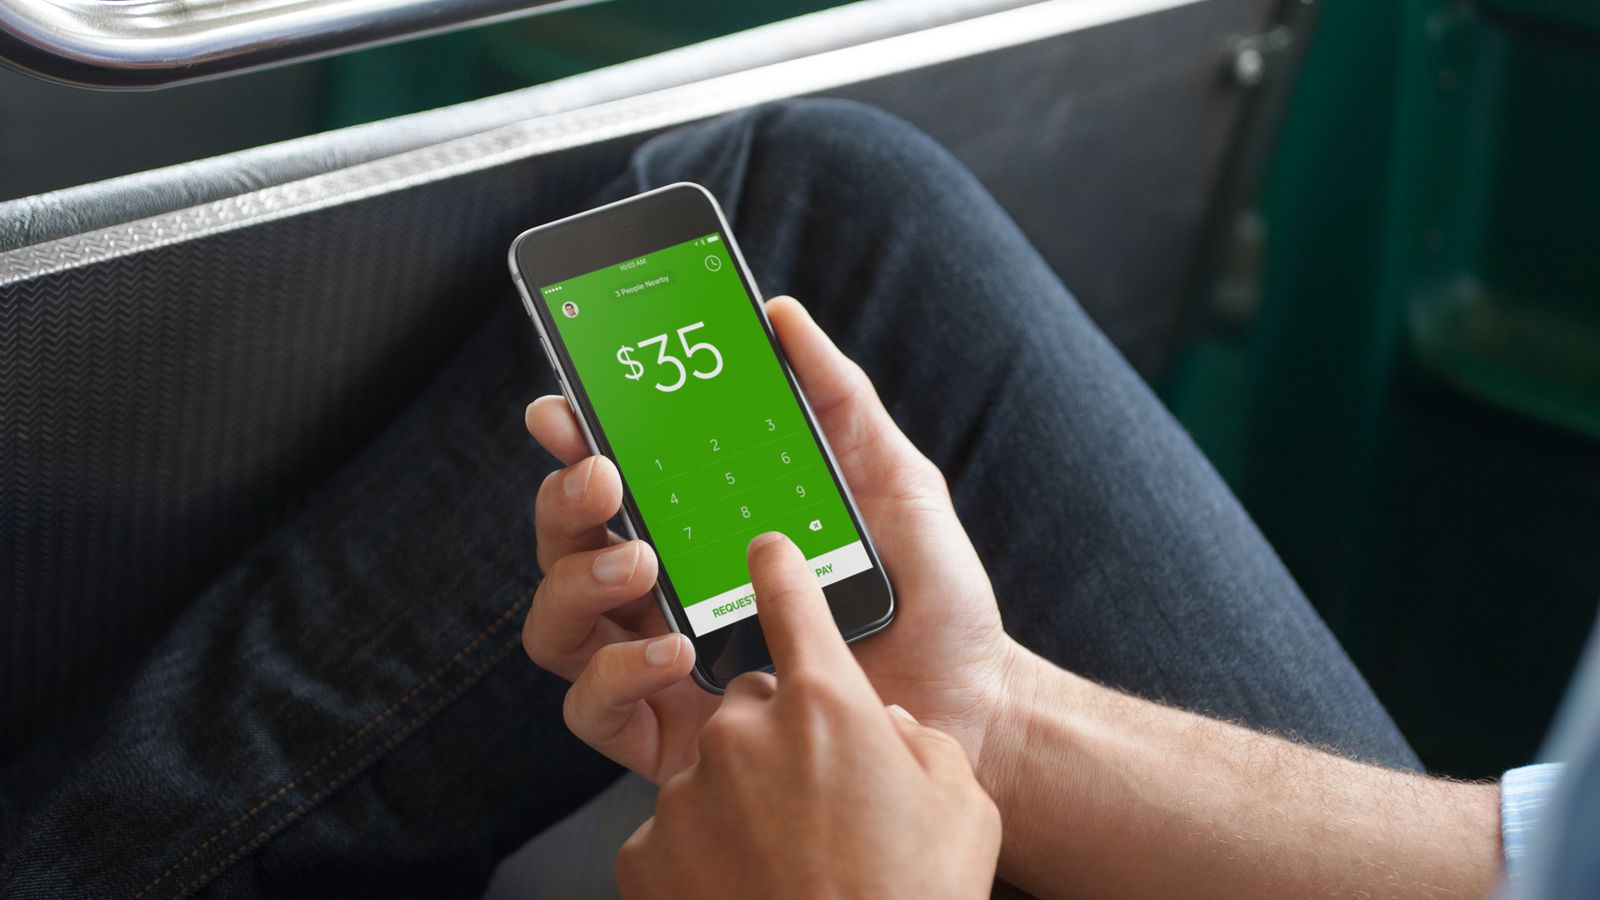 Square Cash will guarantee instant deposits — for a fee